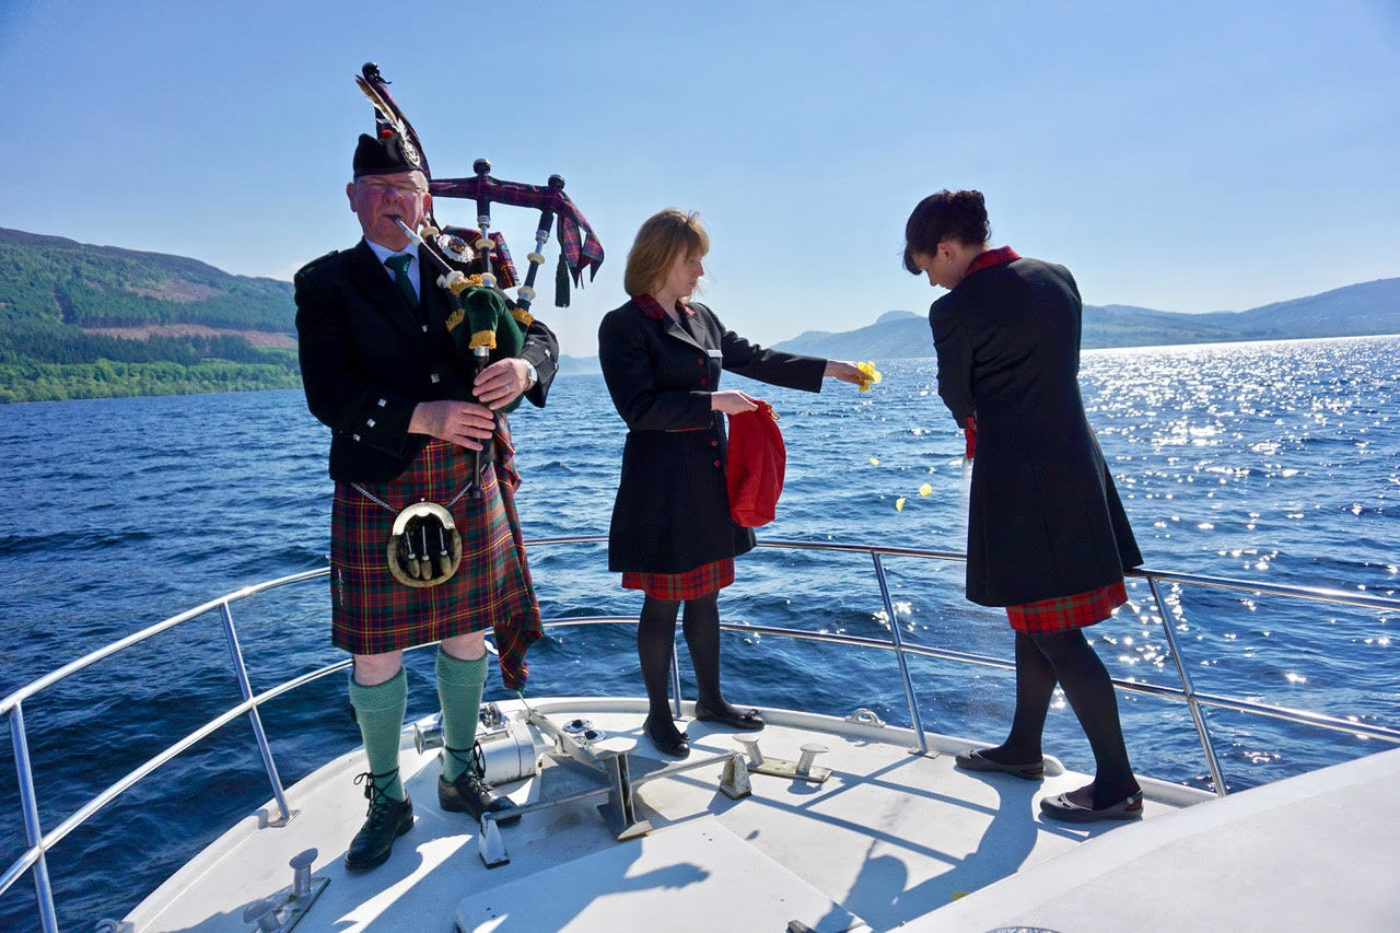 Piper Donald Shaw played 'Dark Island' as John Fraser & Son Directors Vicki Fraser (left) and Sarah Maclean (right) scattered the ashes of the late Alan Heaton onto the waters of Loch Ness. Yellow rose petals were also scattered as a symbol of new beginnings.